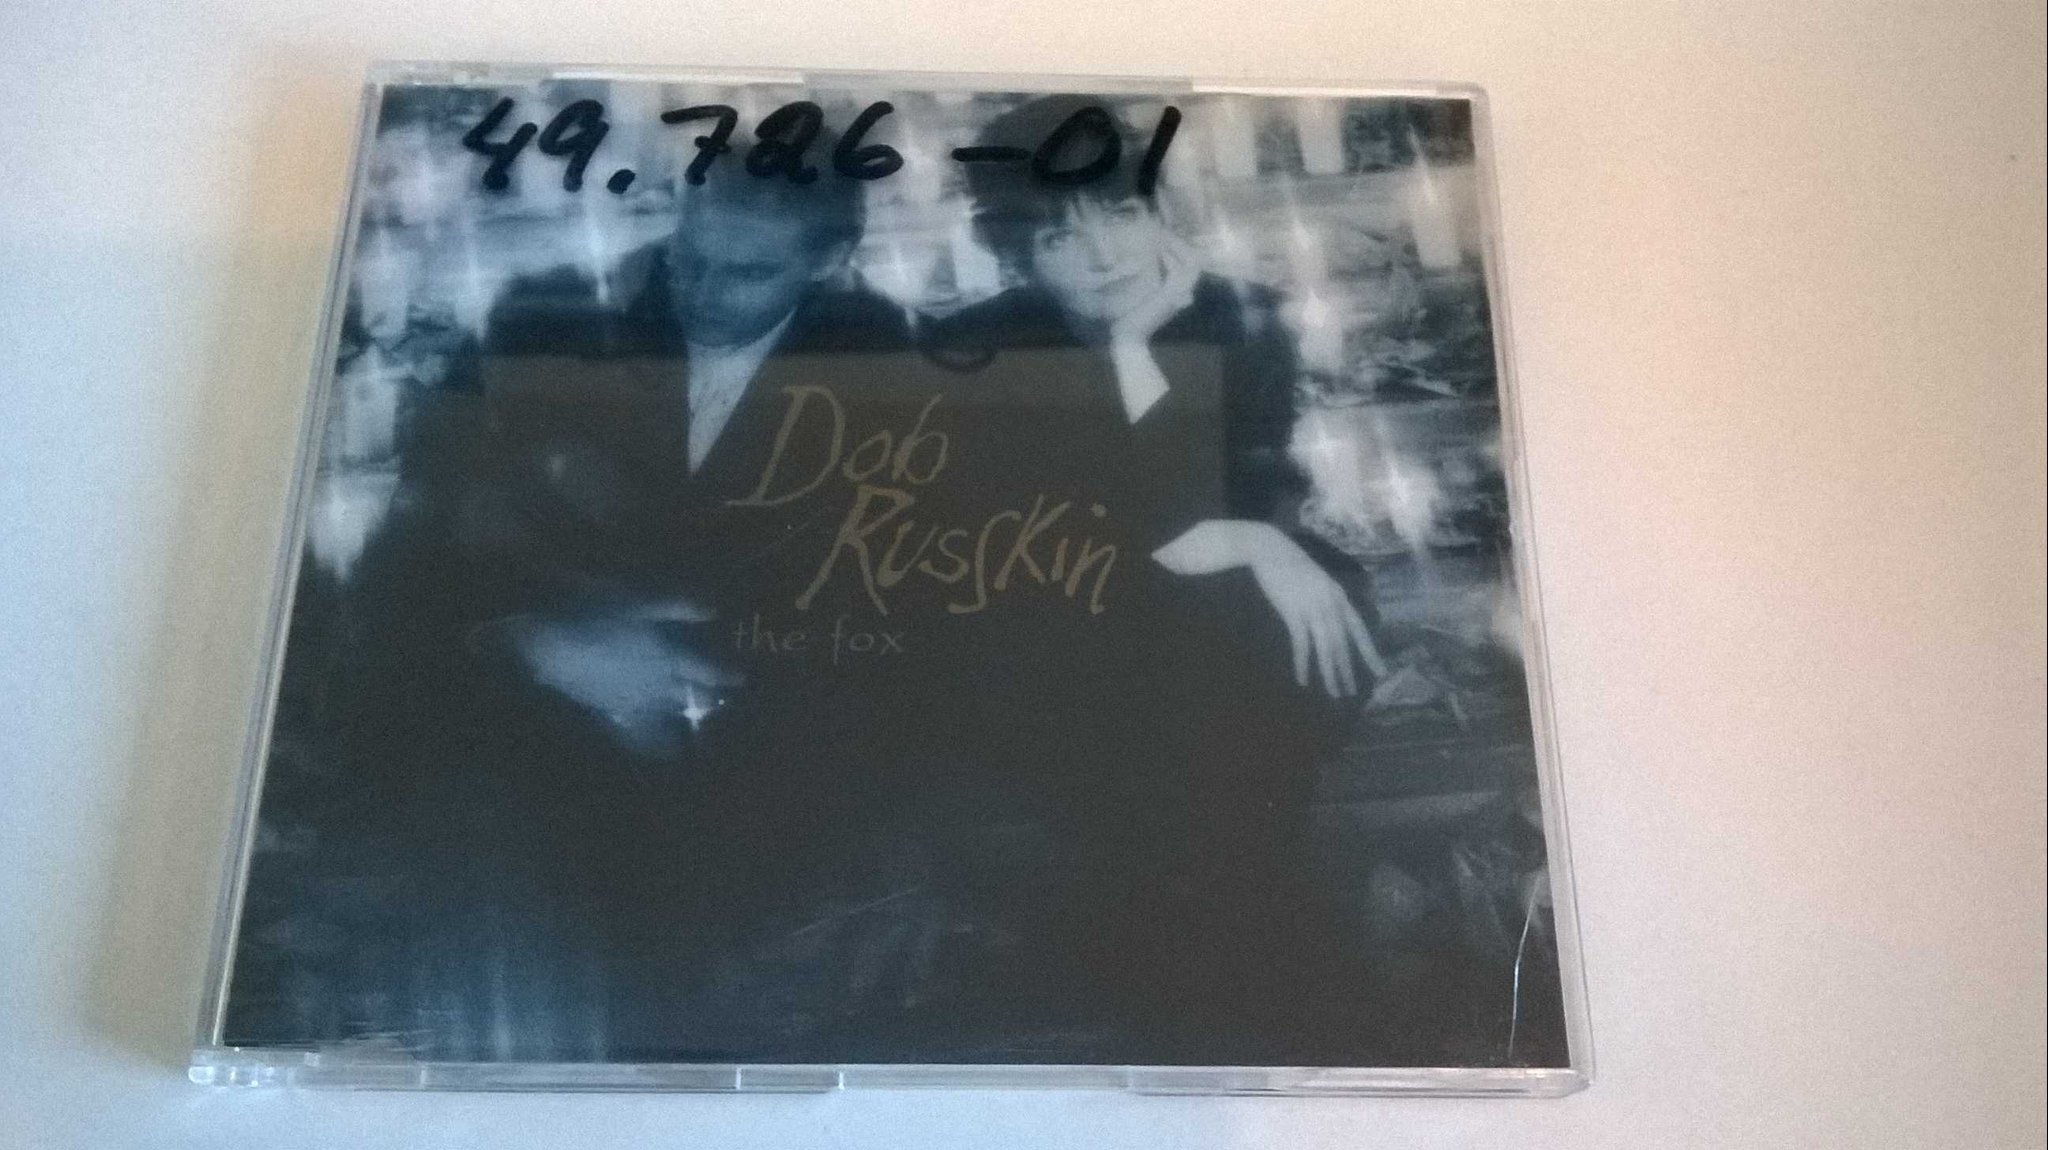 Dob Russkin - The Fox, CD